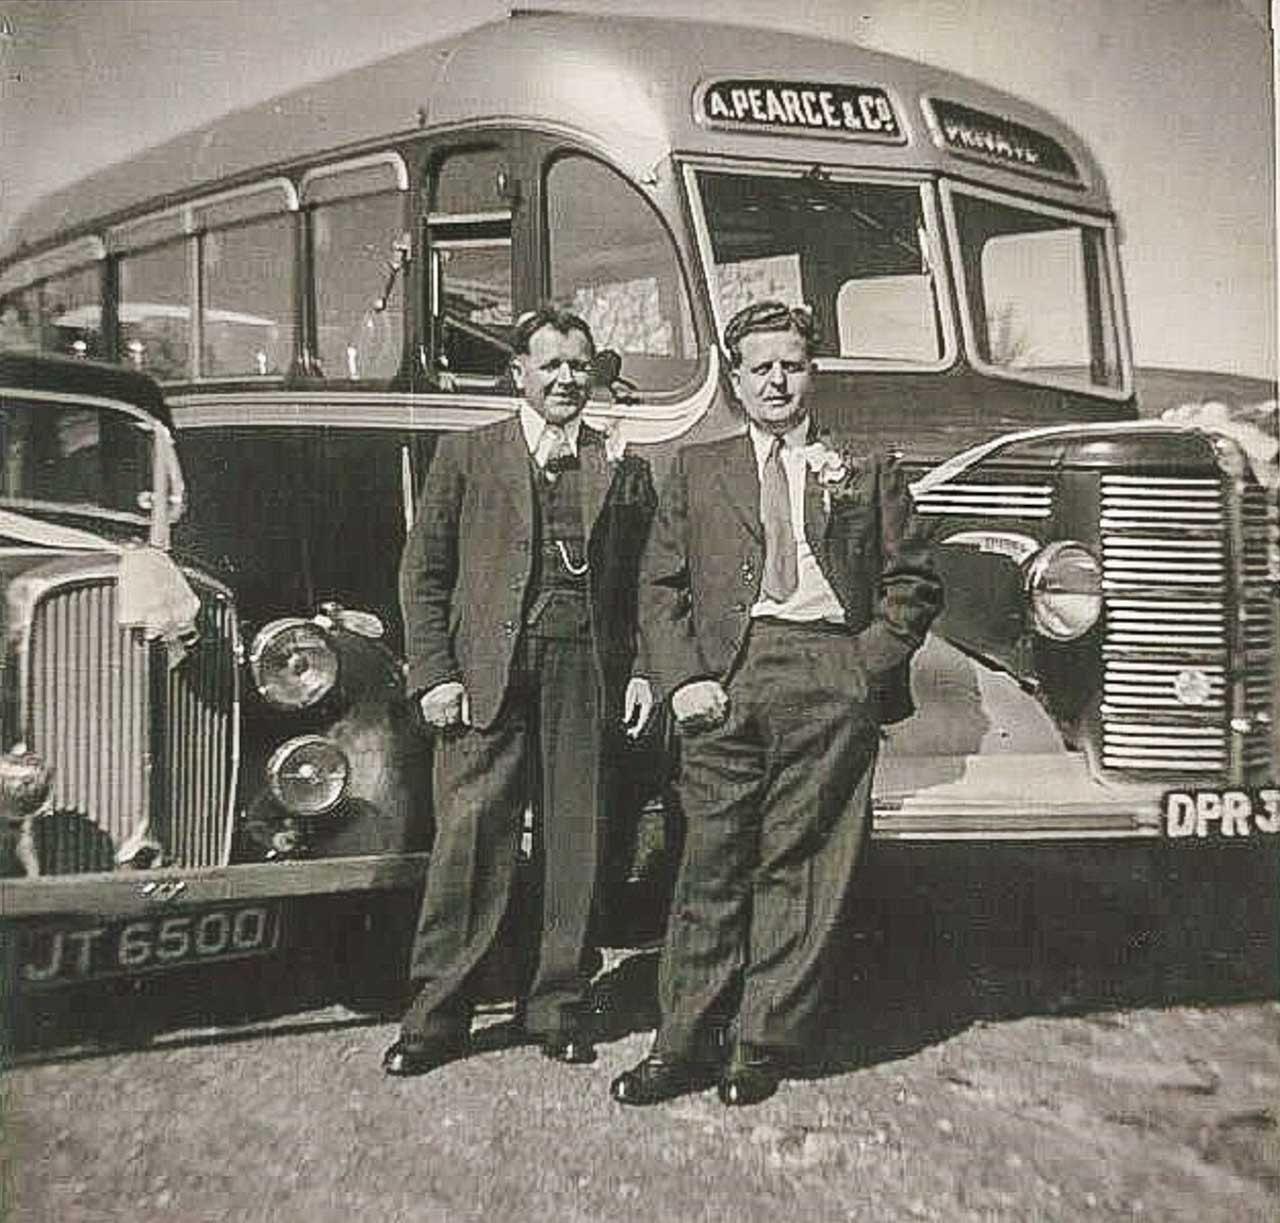 Reg Ironside and Lionel Rogers, both from Cattistock, on wedding duty late 1940's